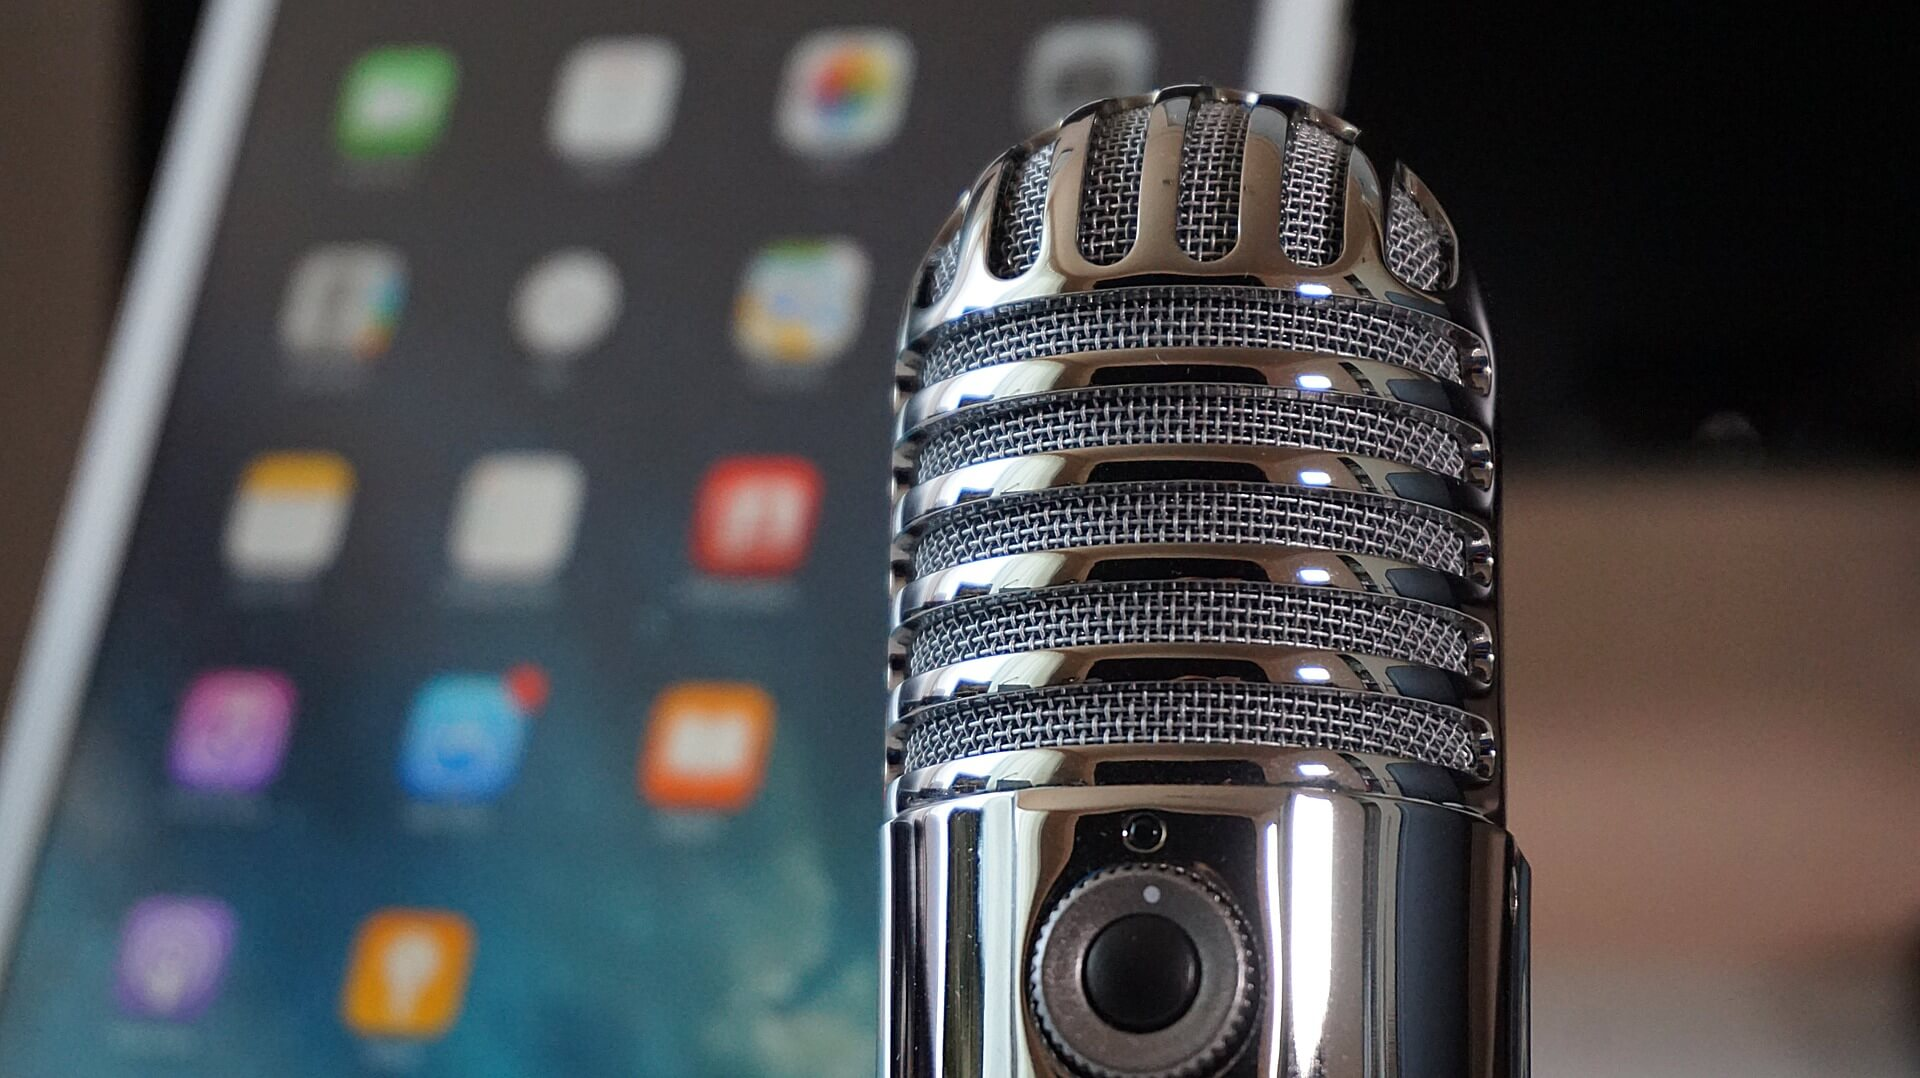 Podcast listening growth continues: Mobile app usage up 60% since January 2018, study finds